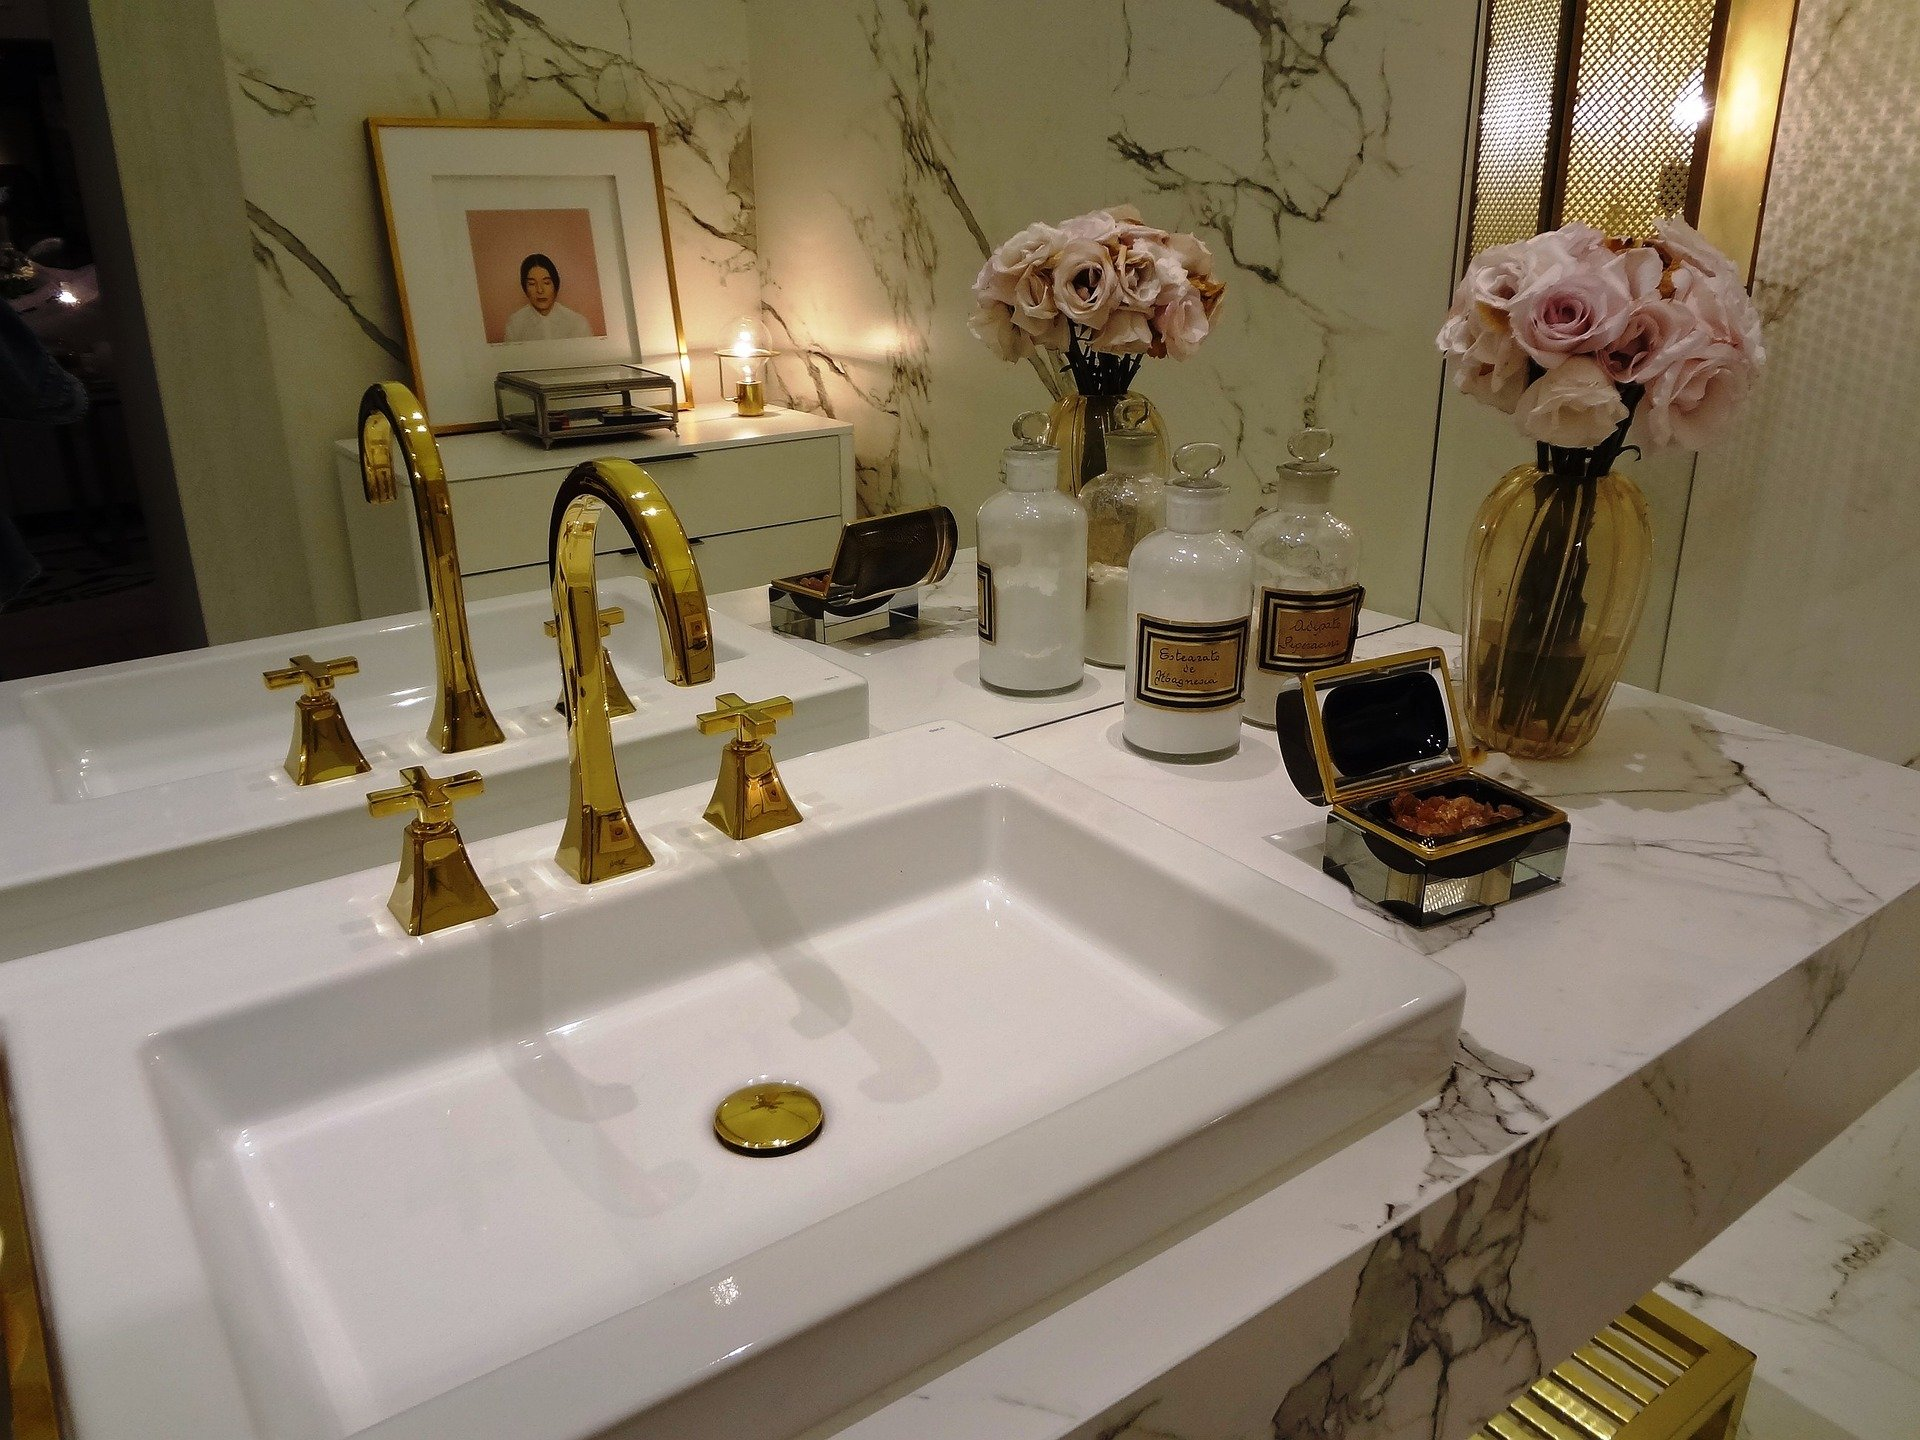 Tips on How to Spruce Up Your Small Bathroom 4